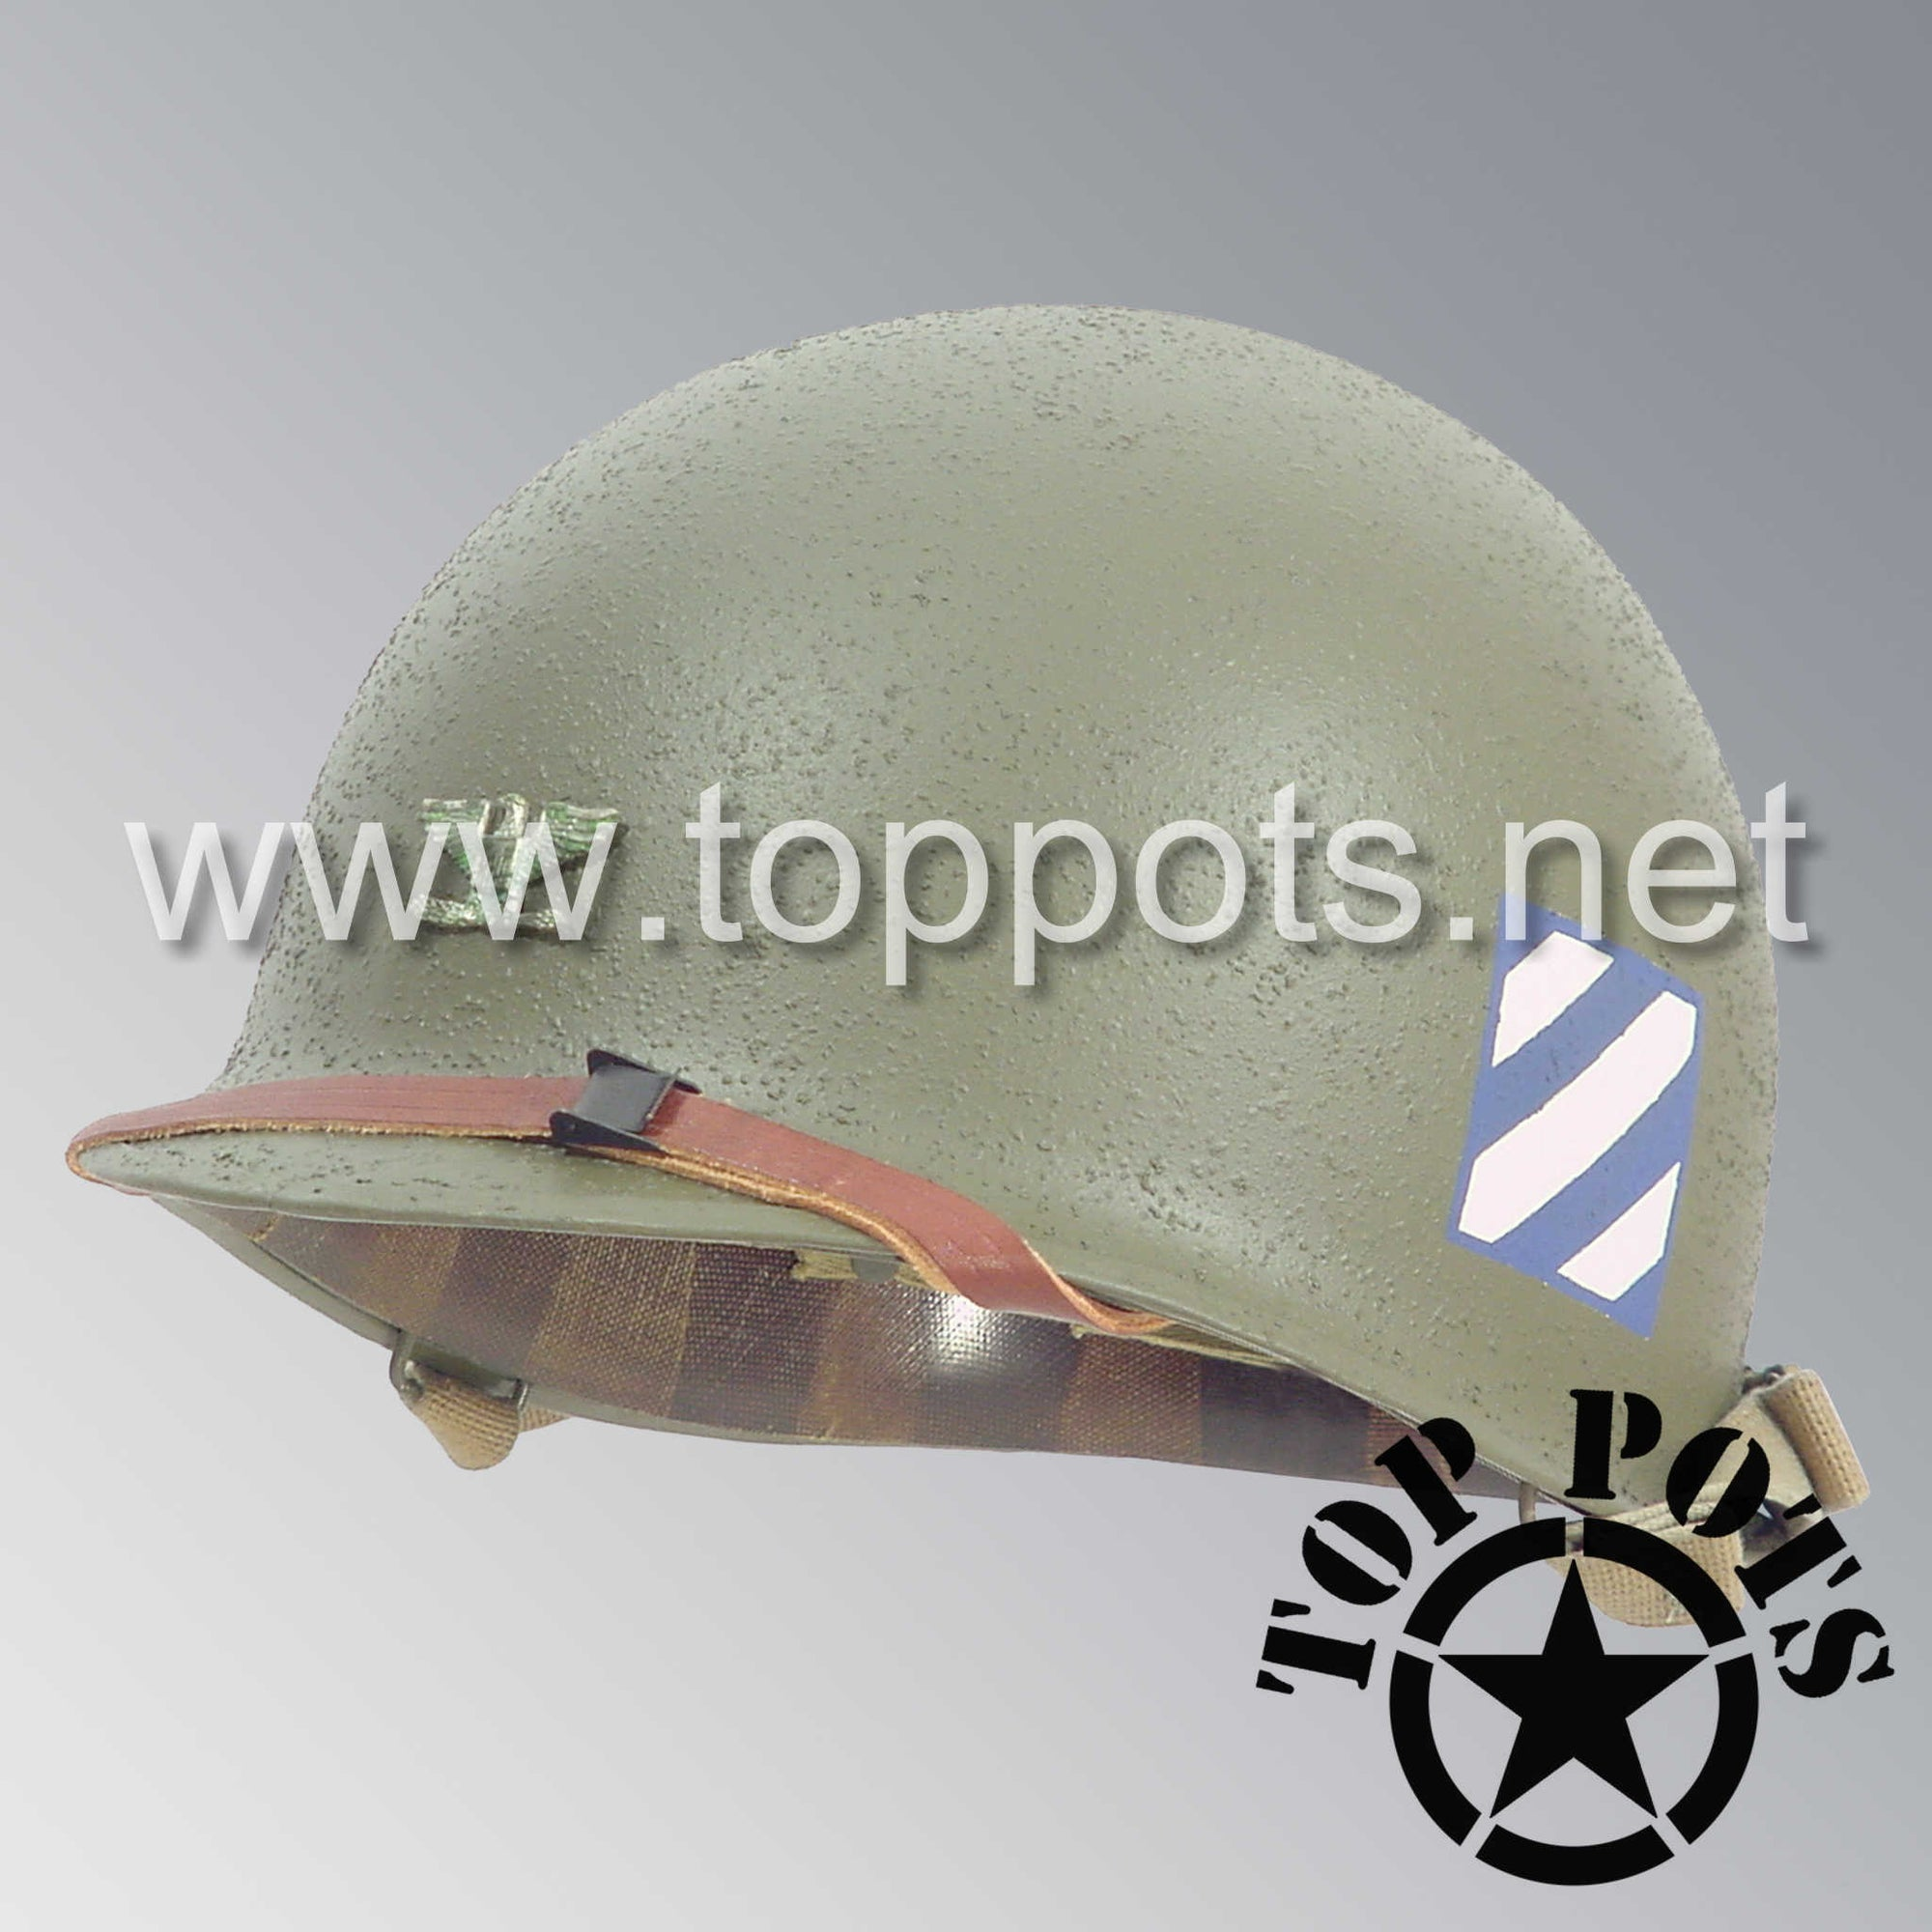 Image 1 of WWII US Army Restored Original M1 Infantry Helmet Swivel Bale Shell and Liner with 3rd Infantry Division Officer Colonel Metal Rank and Emblem